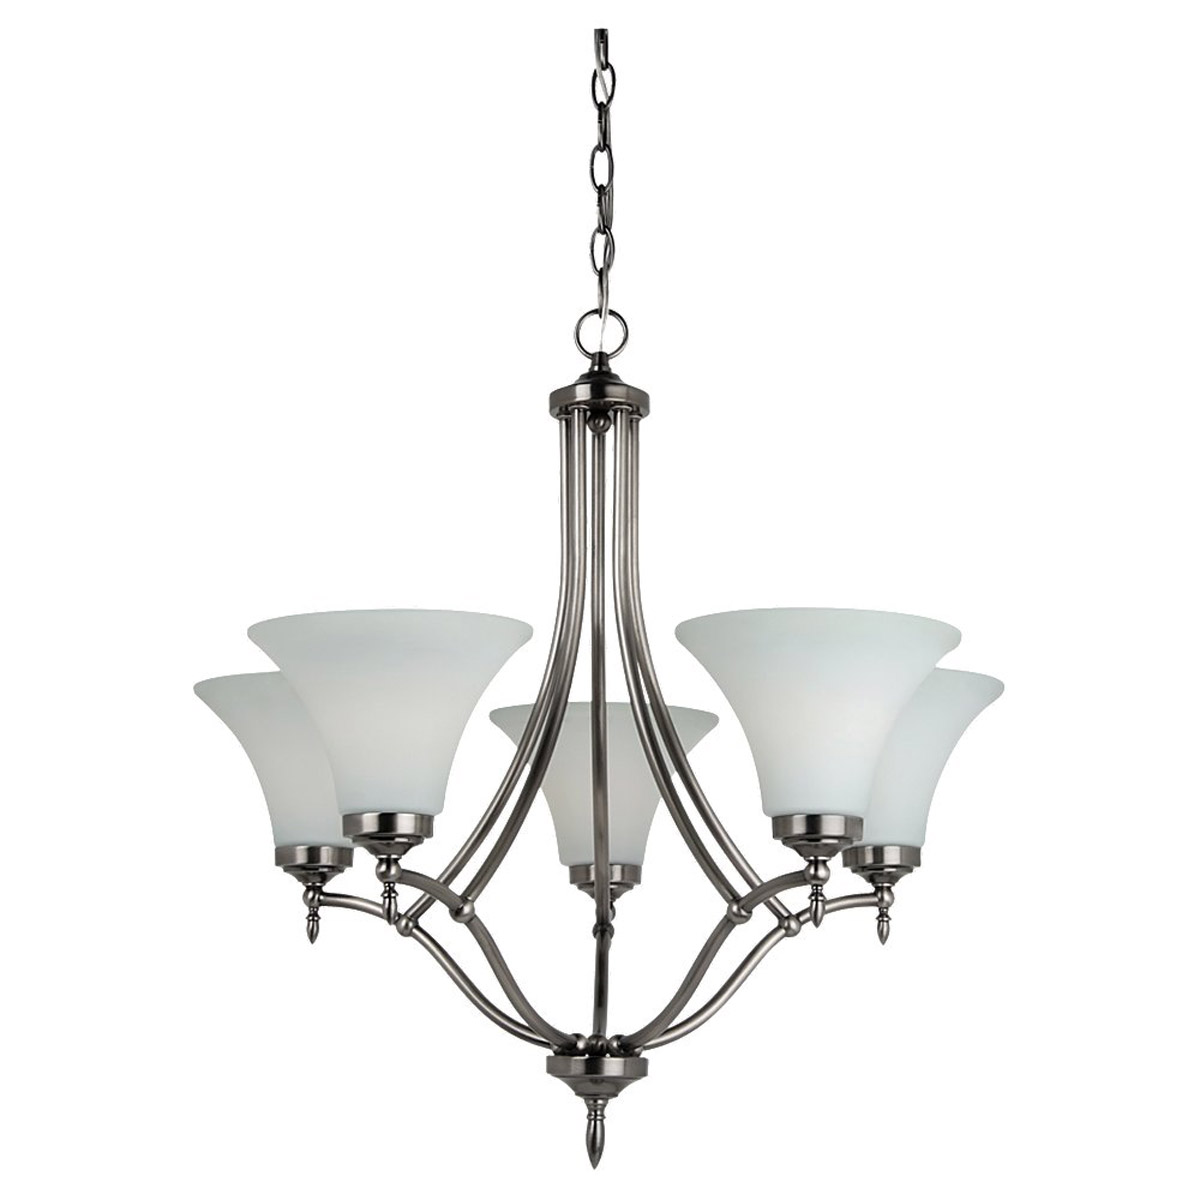 Sea Gull Lighting Montreal 5 Light Chandelier in Antique Brushed Nickel 31181BLE-965